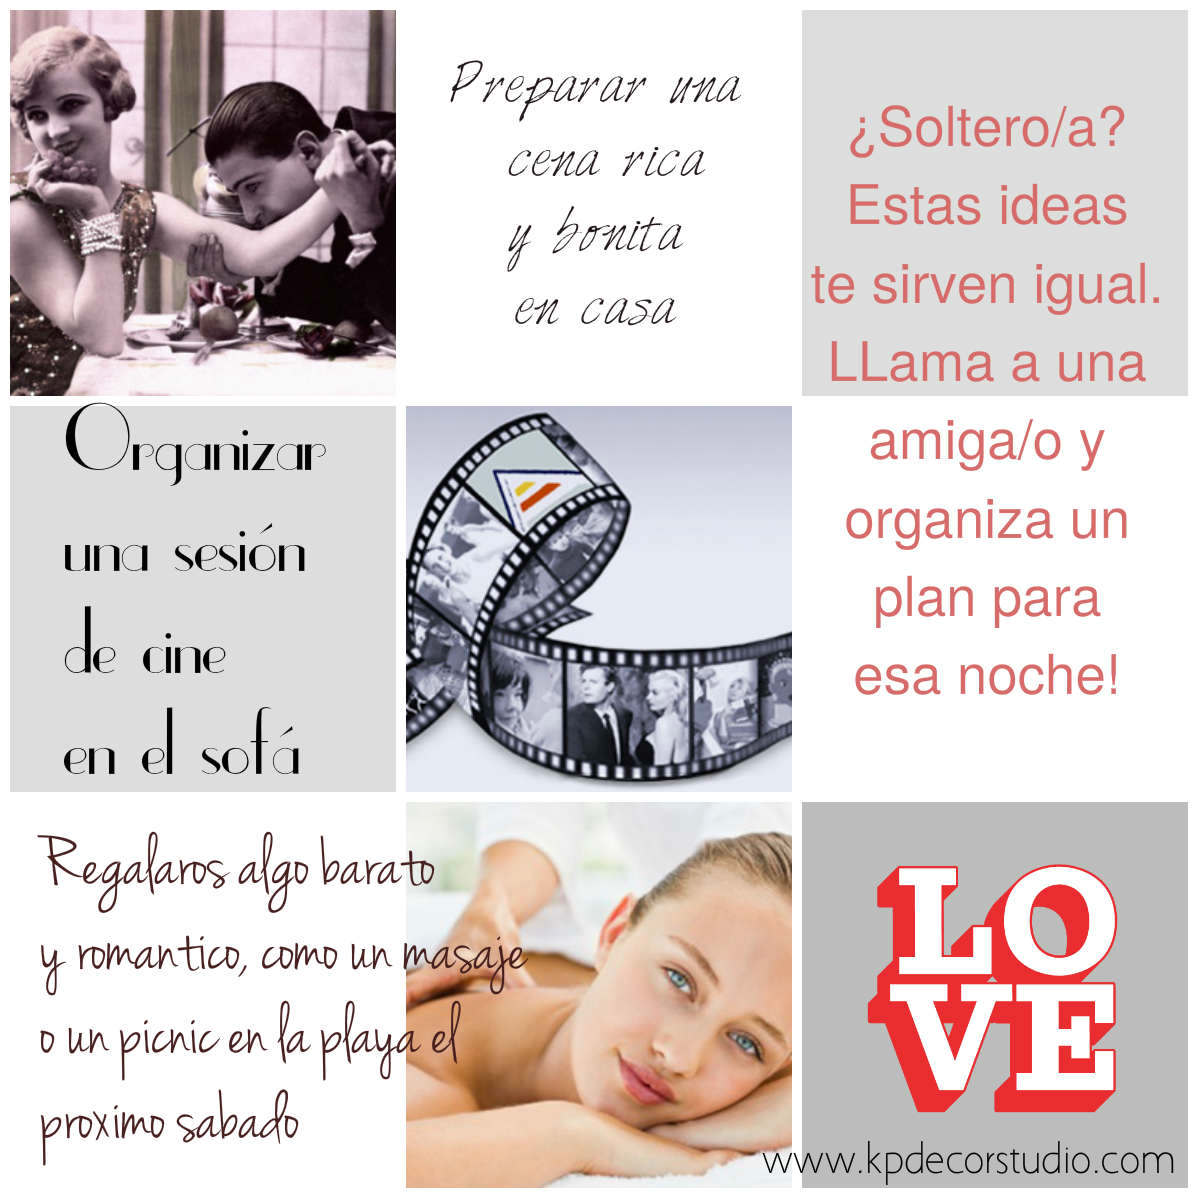 Kp decor studio ideas para celebrar san valent n - Ideas originales san valentin ...